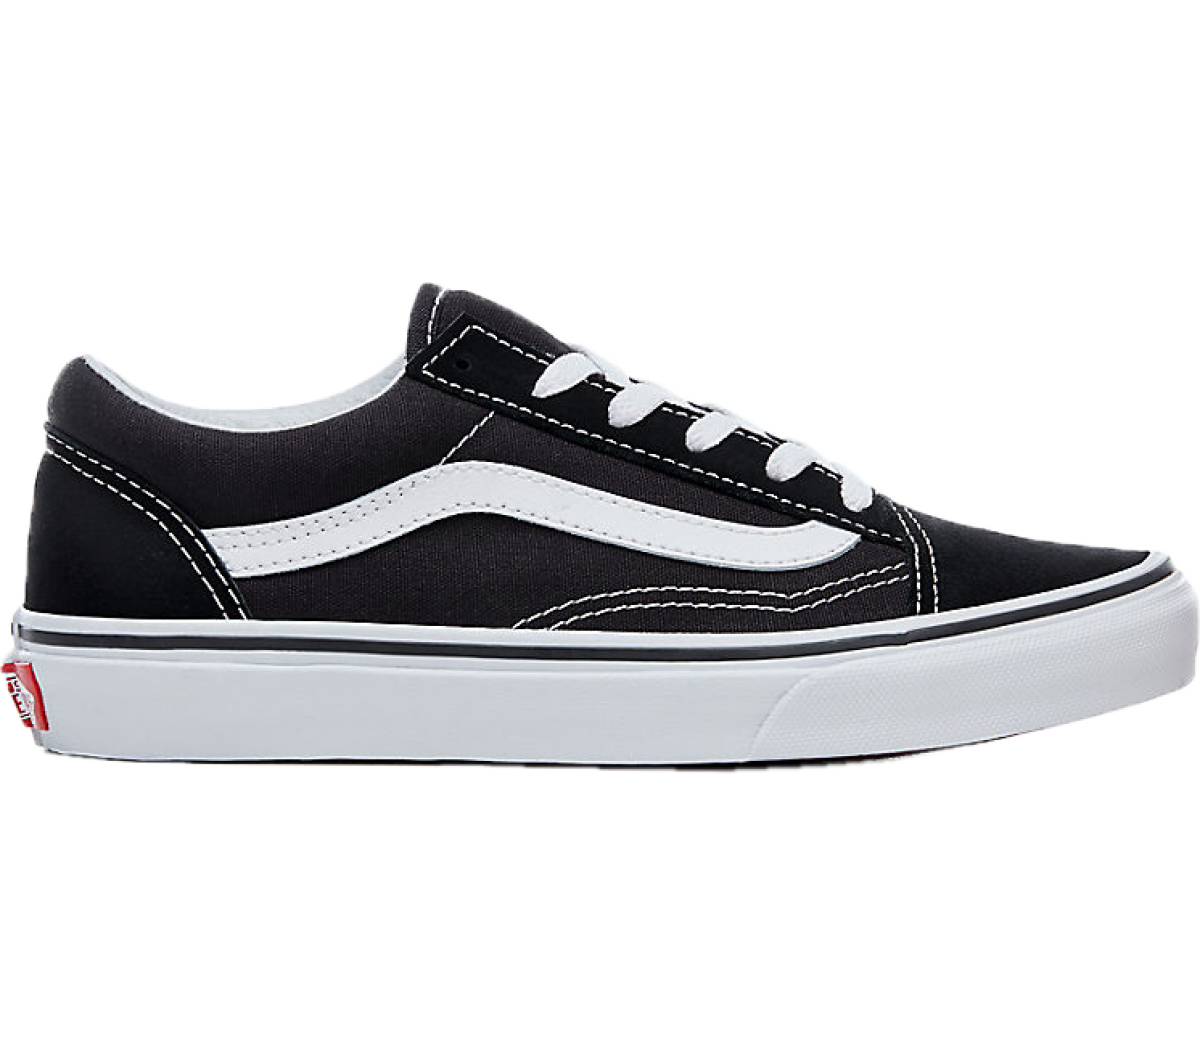 vans outlet online sale, Vans Old Skool Sneakers Blanket